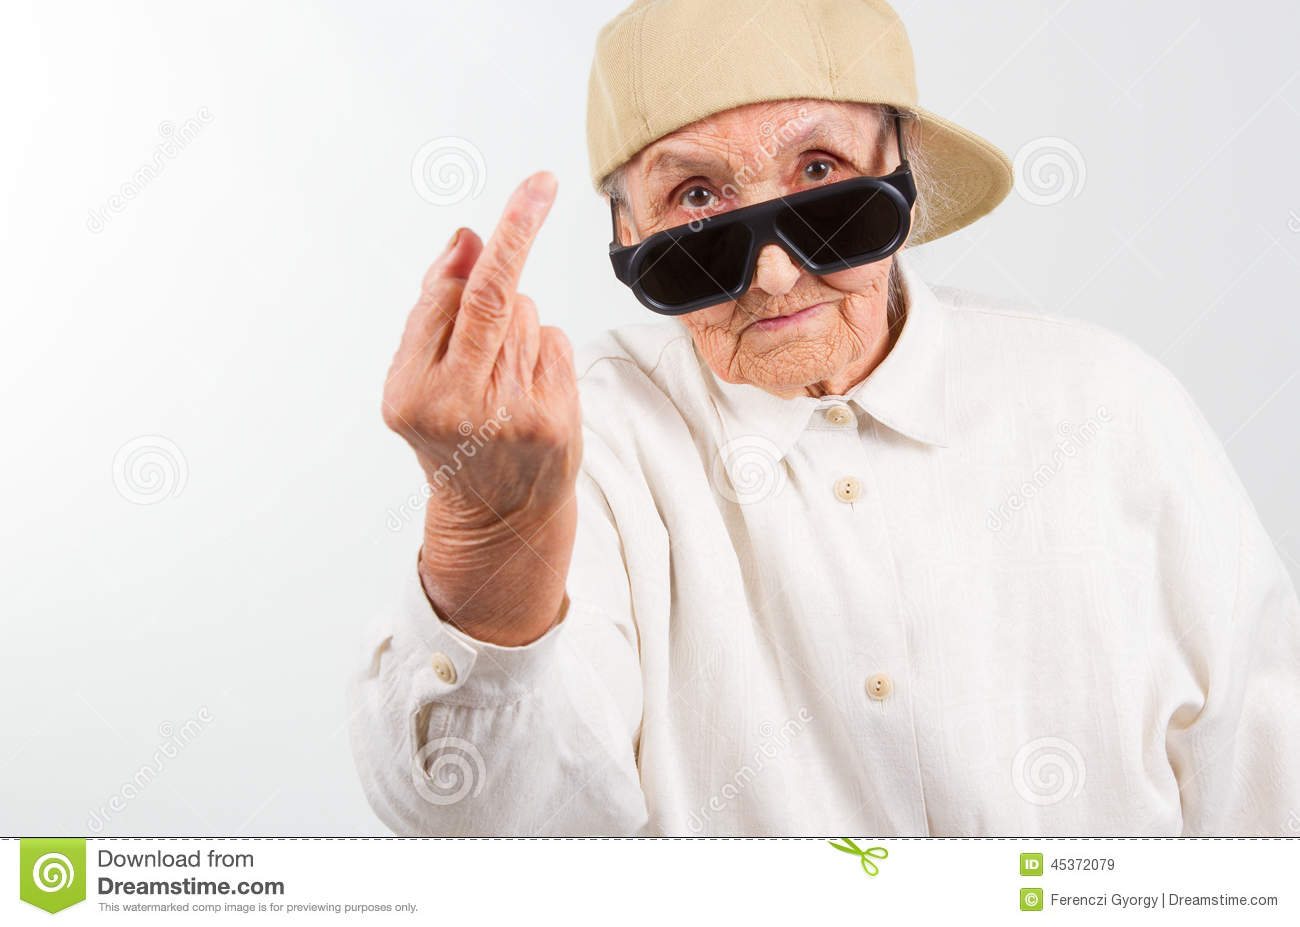 ... and baseball cap, who shows her f-finger , isolated on white